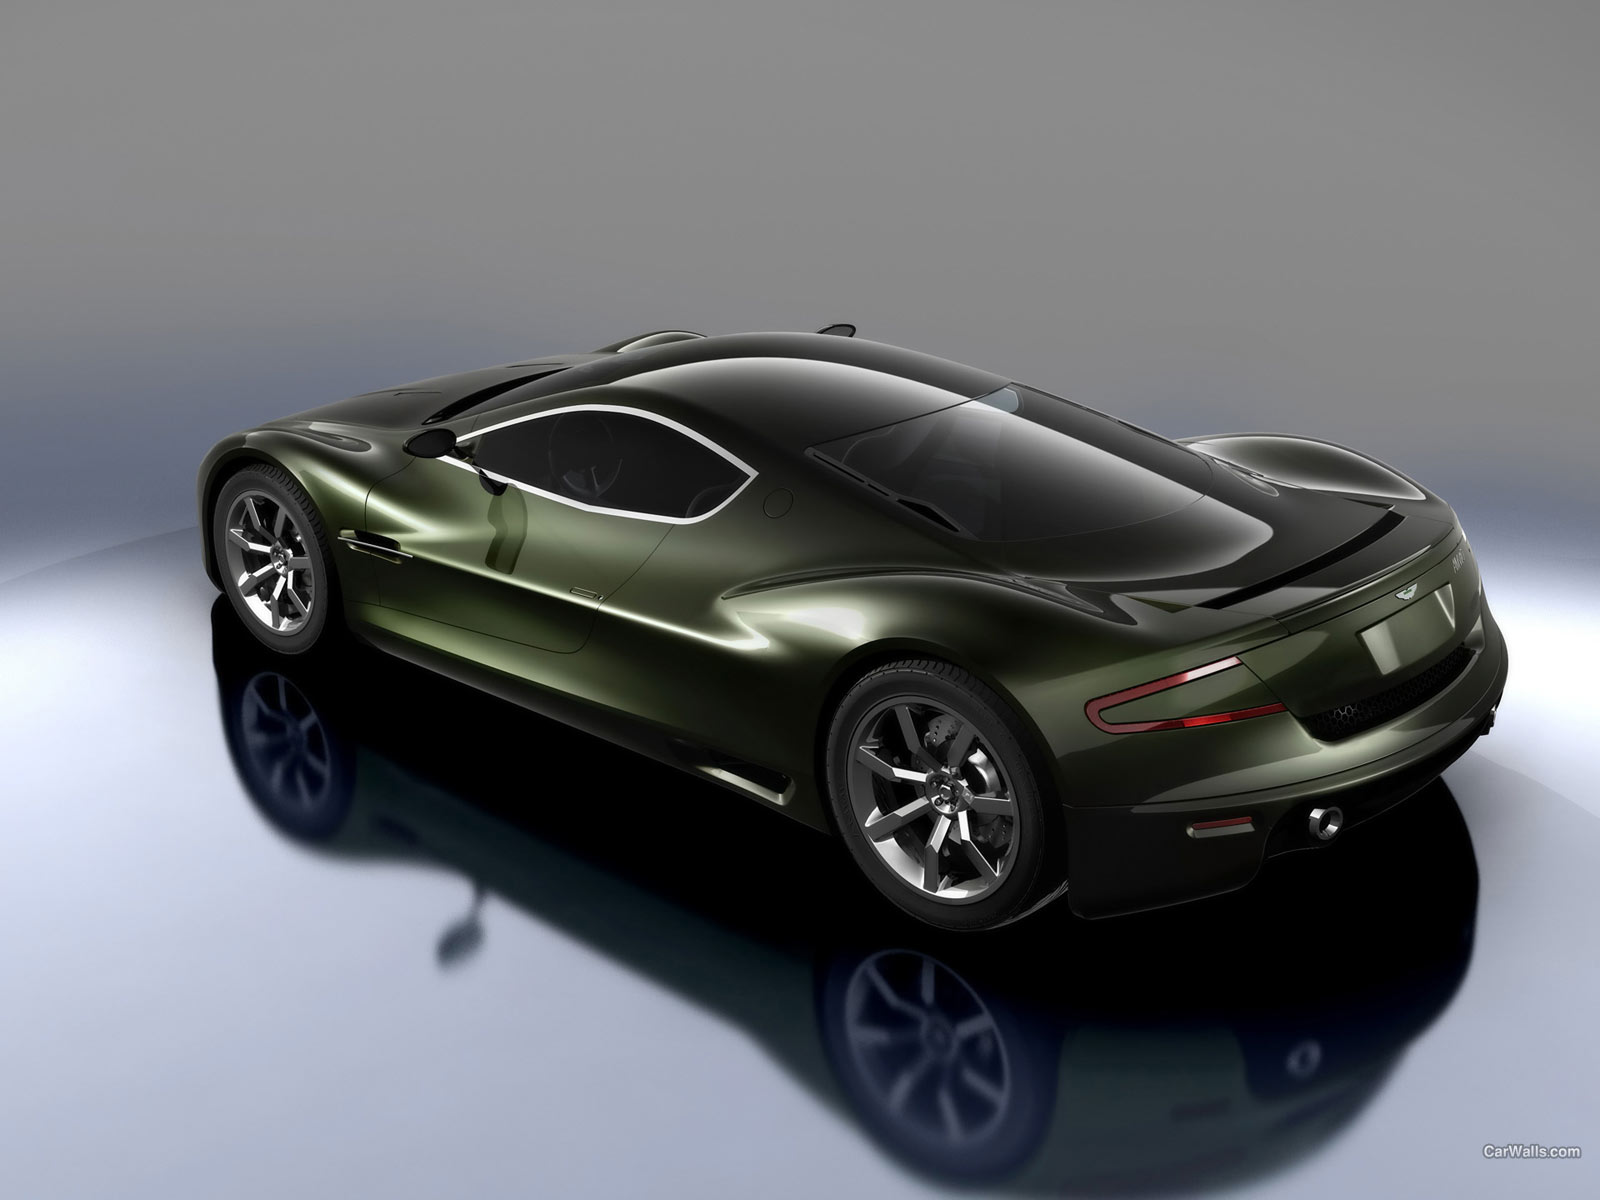 ASTON MARTIN CAR WALLPAPERS: Aston Martin AMV10 Concept Car Wallpapers